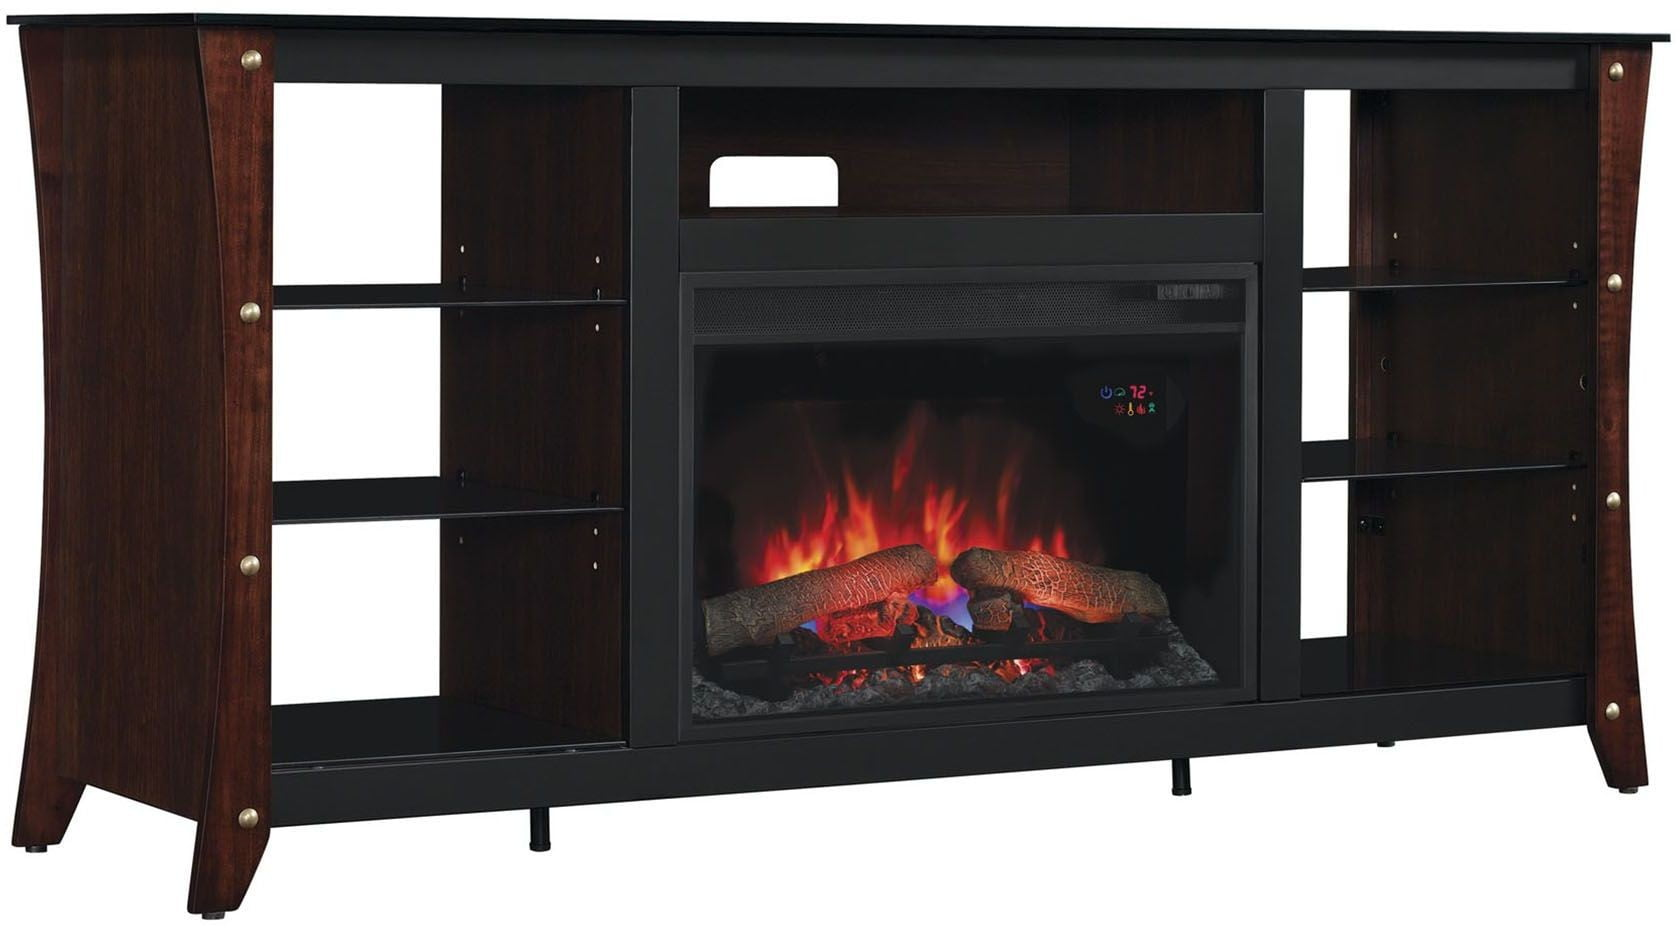 Classicflame Midnight Cherry Marlin Tv Stand With 26 Electric Fireplace From Twin Star